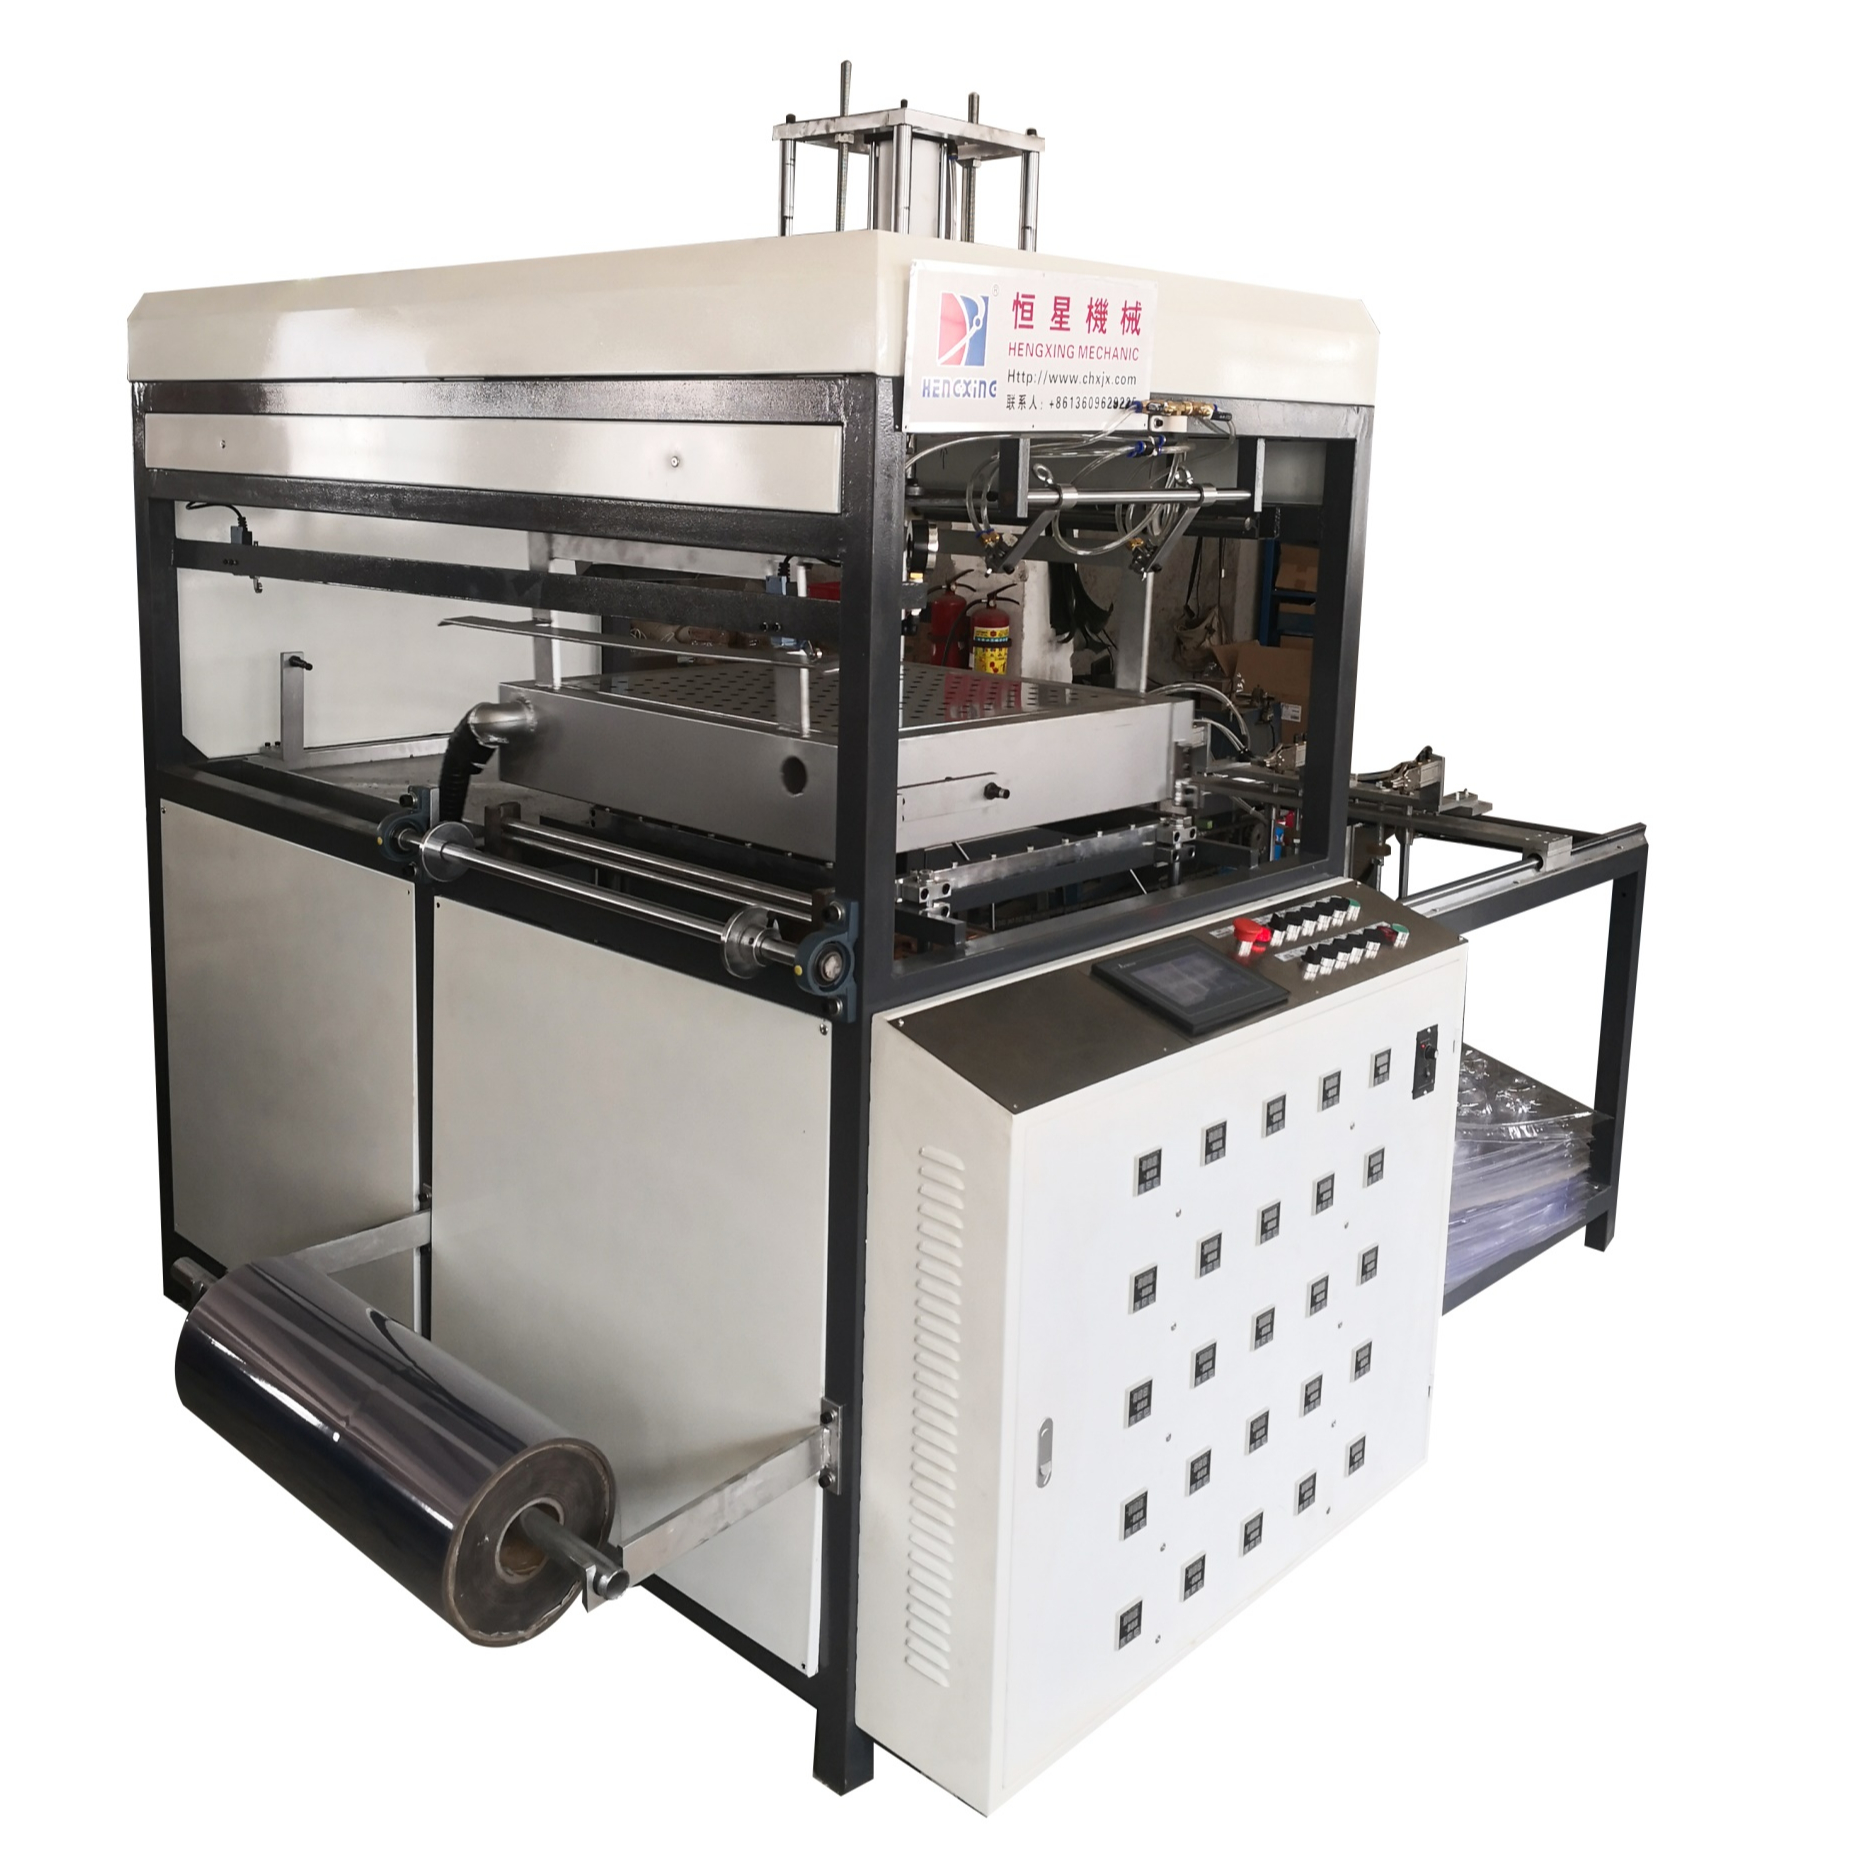 PVC / PET / PP / PS/ABS/EVA Automatic Plastic Blister Vacuum Forming Molding Machine Factory Price